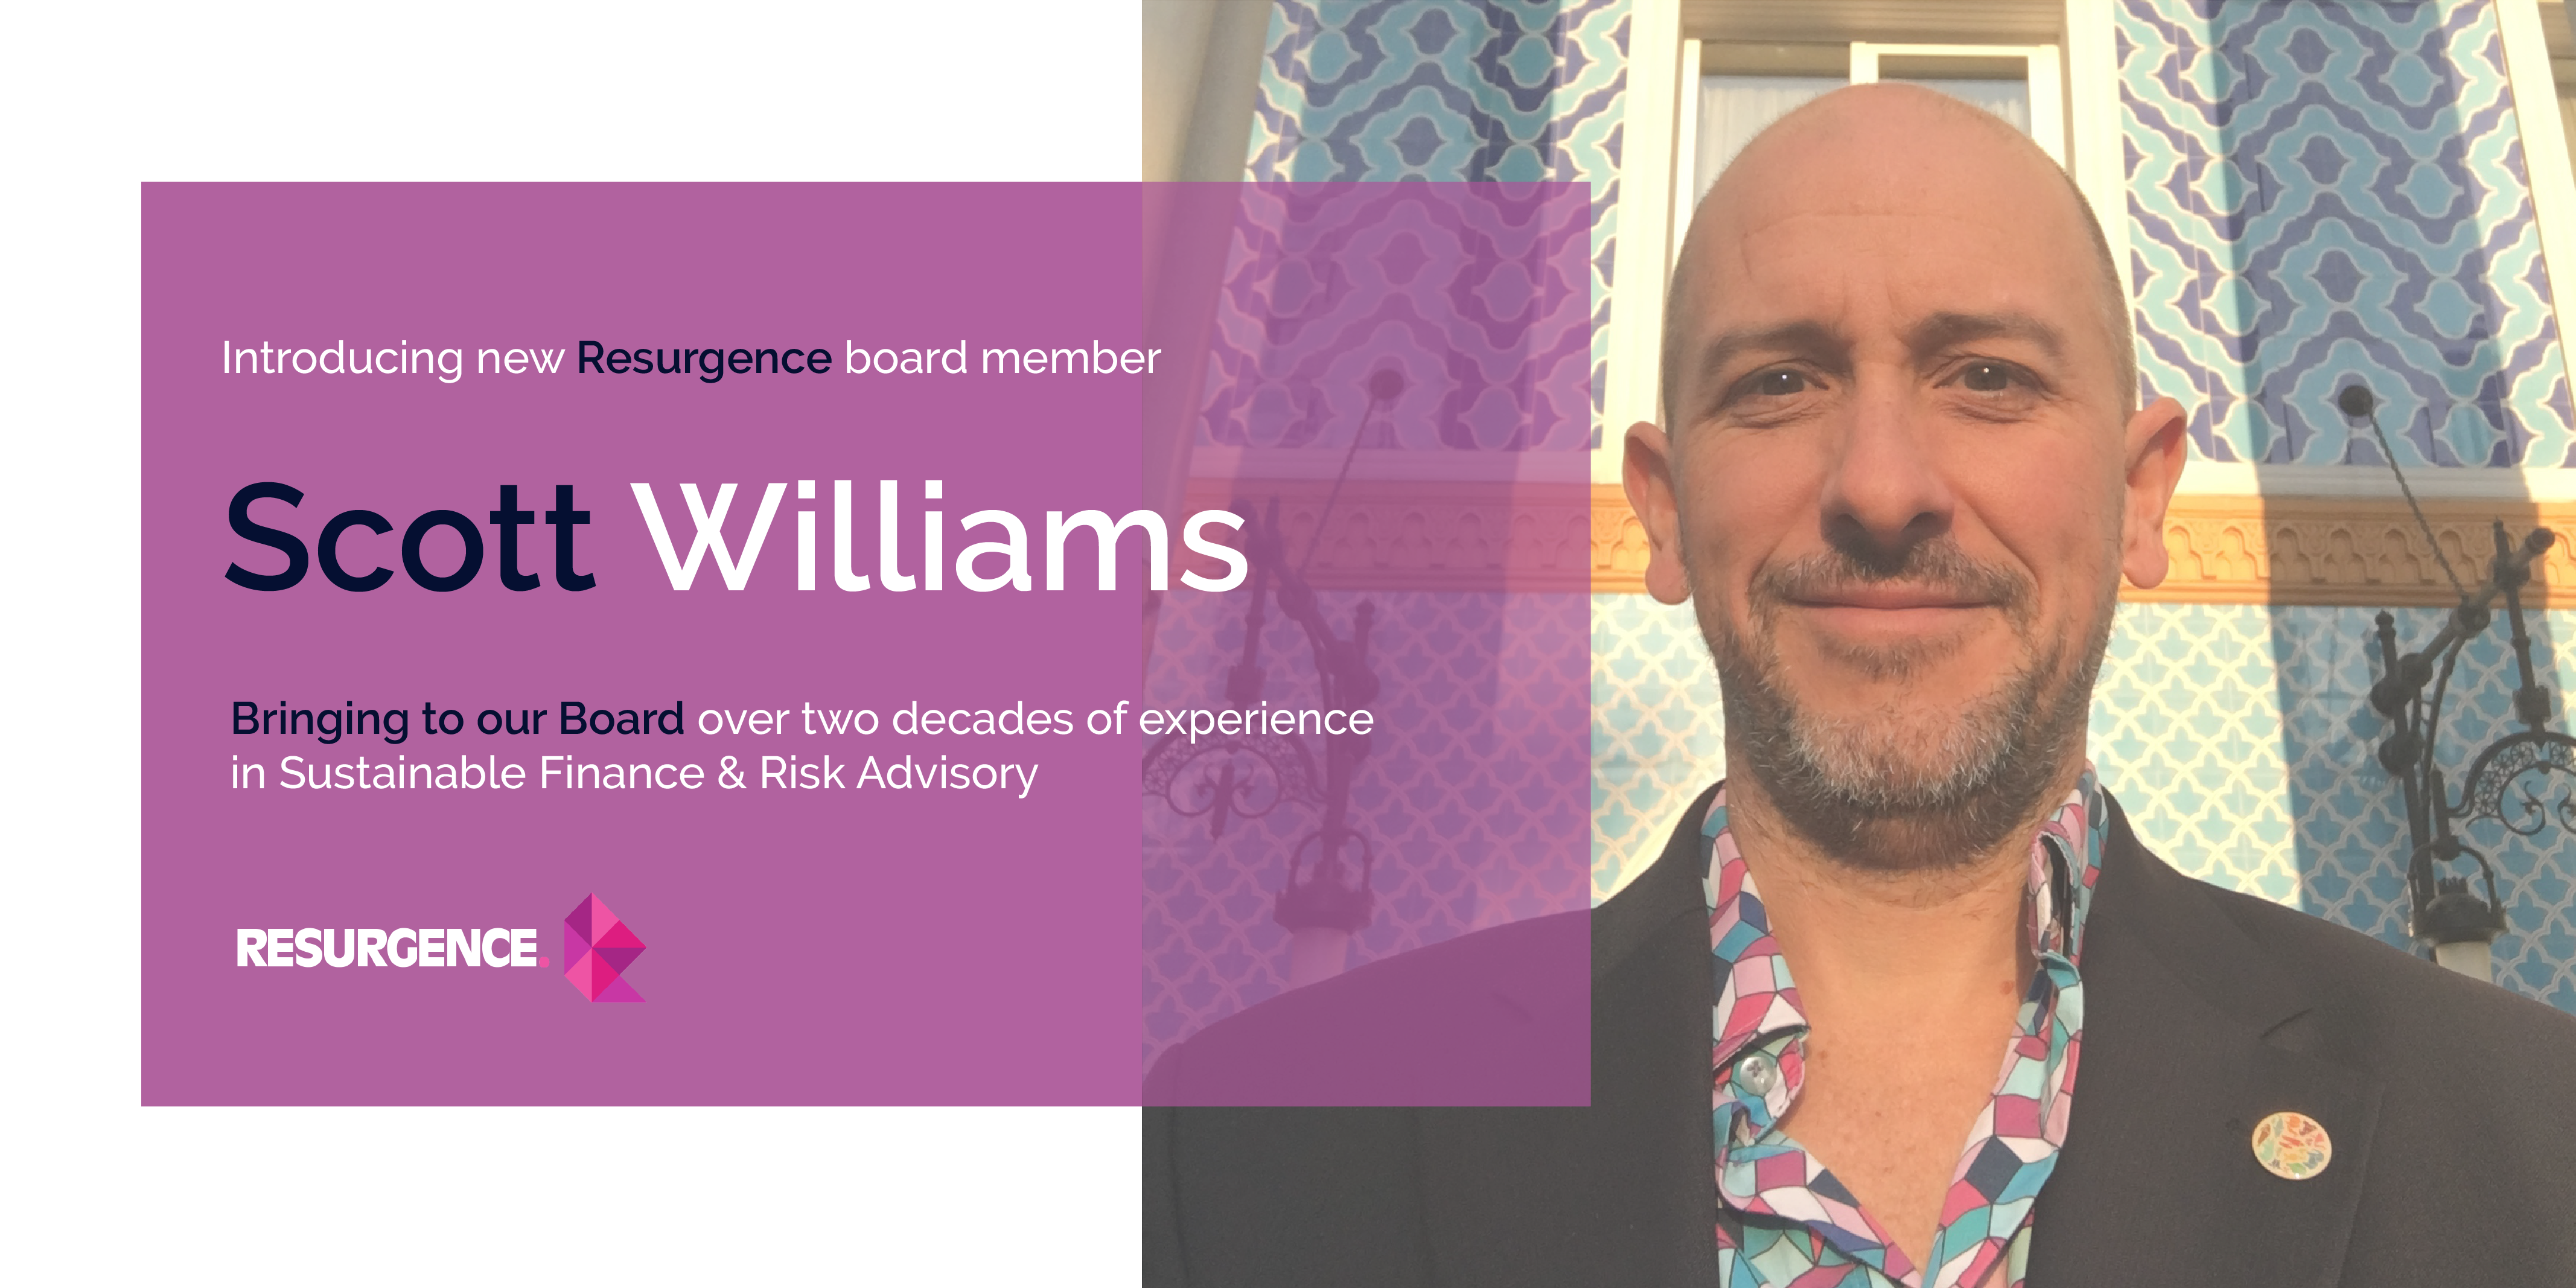 Resurgence welcomes Disaster Risk Management expert Scott Williams to the Board